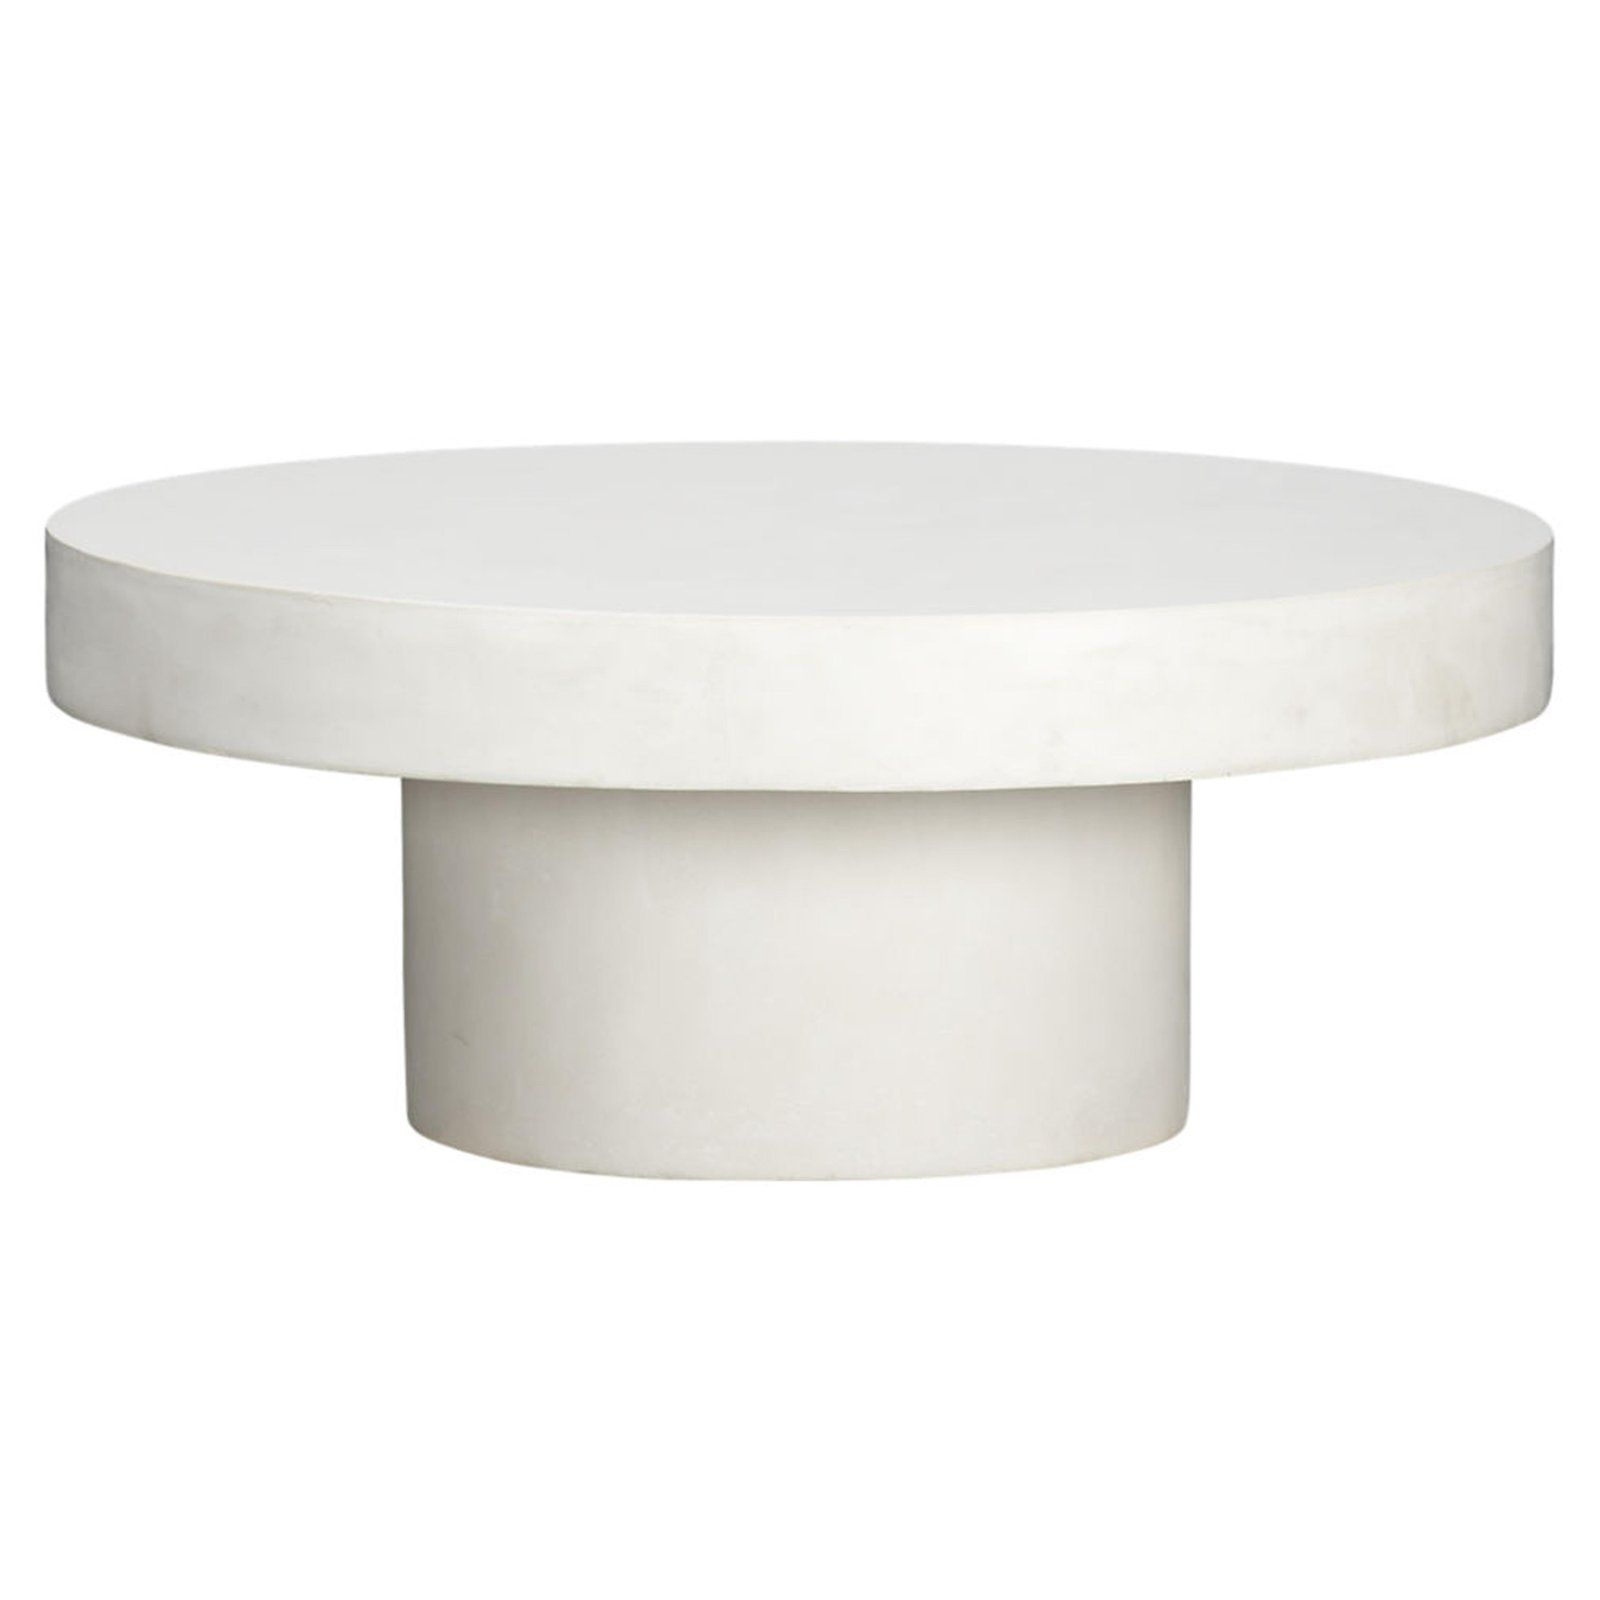 Cb2 Chic Round White Concrete Coffee Table For Sale Image 4 Of 6 White Round Coffee Table Round Coffee Table Modern Coffee Table